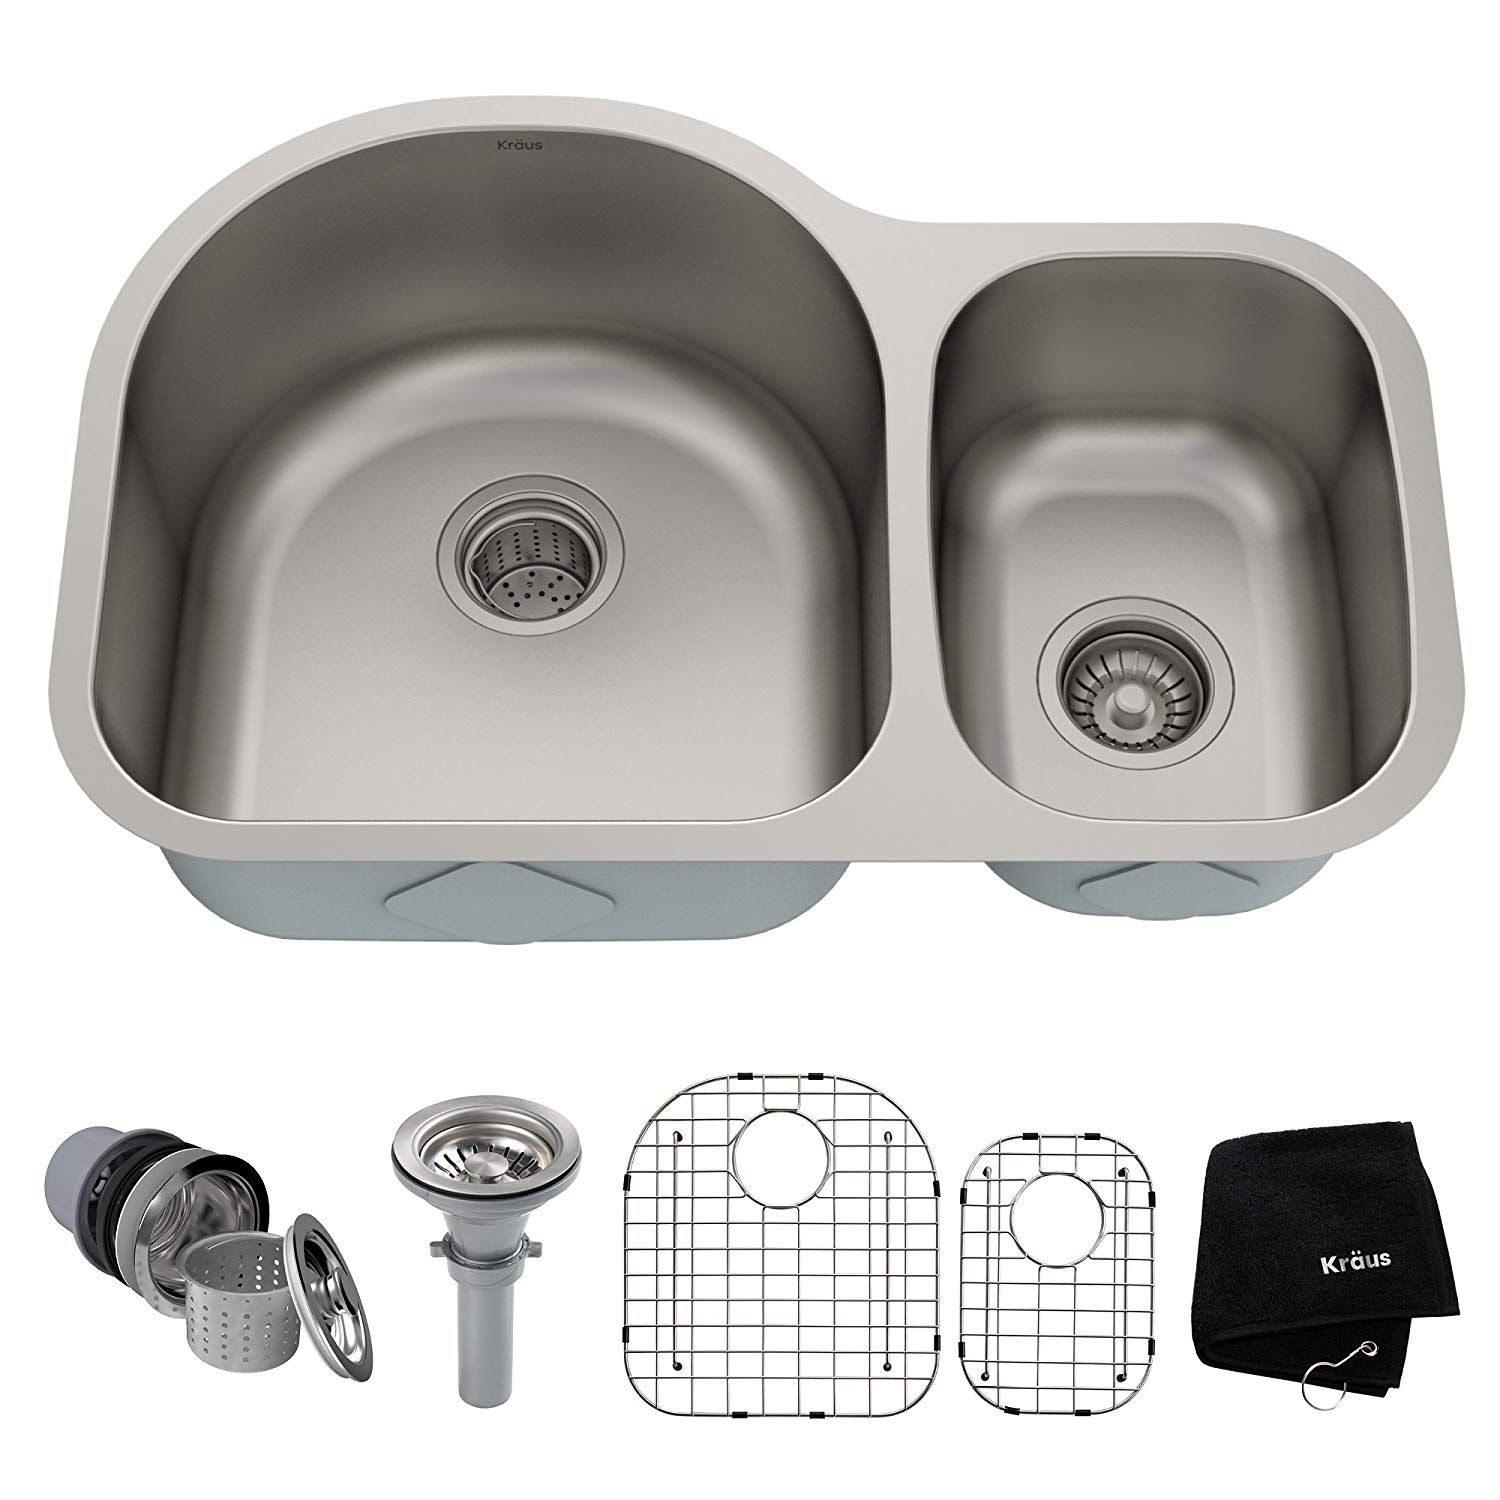 Kraus Kbu21 30 Inch Undermount 60 40 Double Bowl 16 Gauge Stainless Steel Kitchen Sink You Can Get Additional Details At The Ima Kitchen Fixtures In 2019